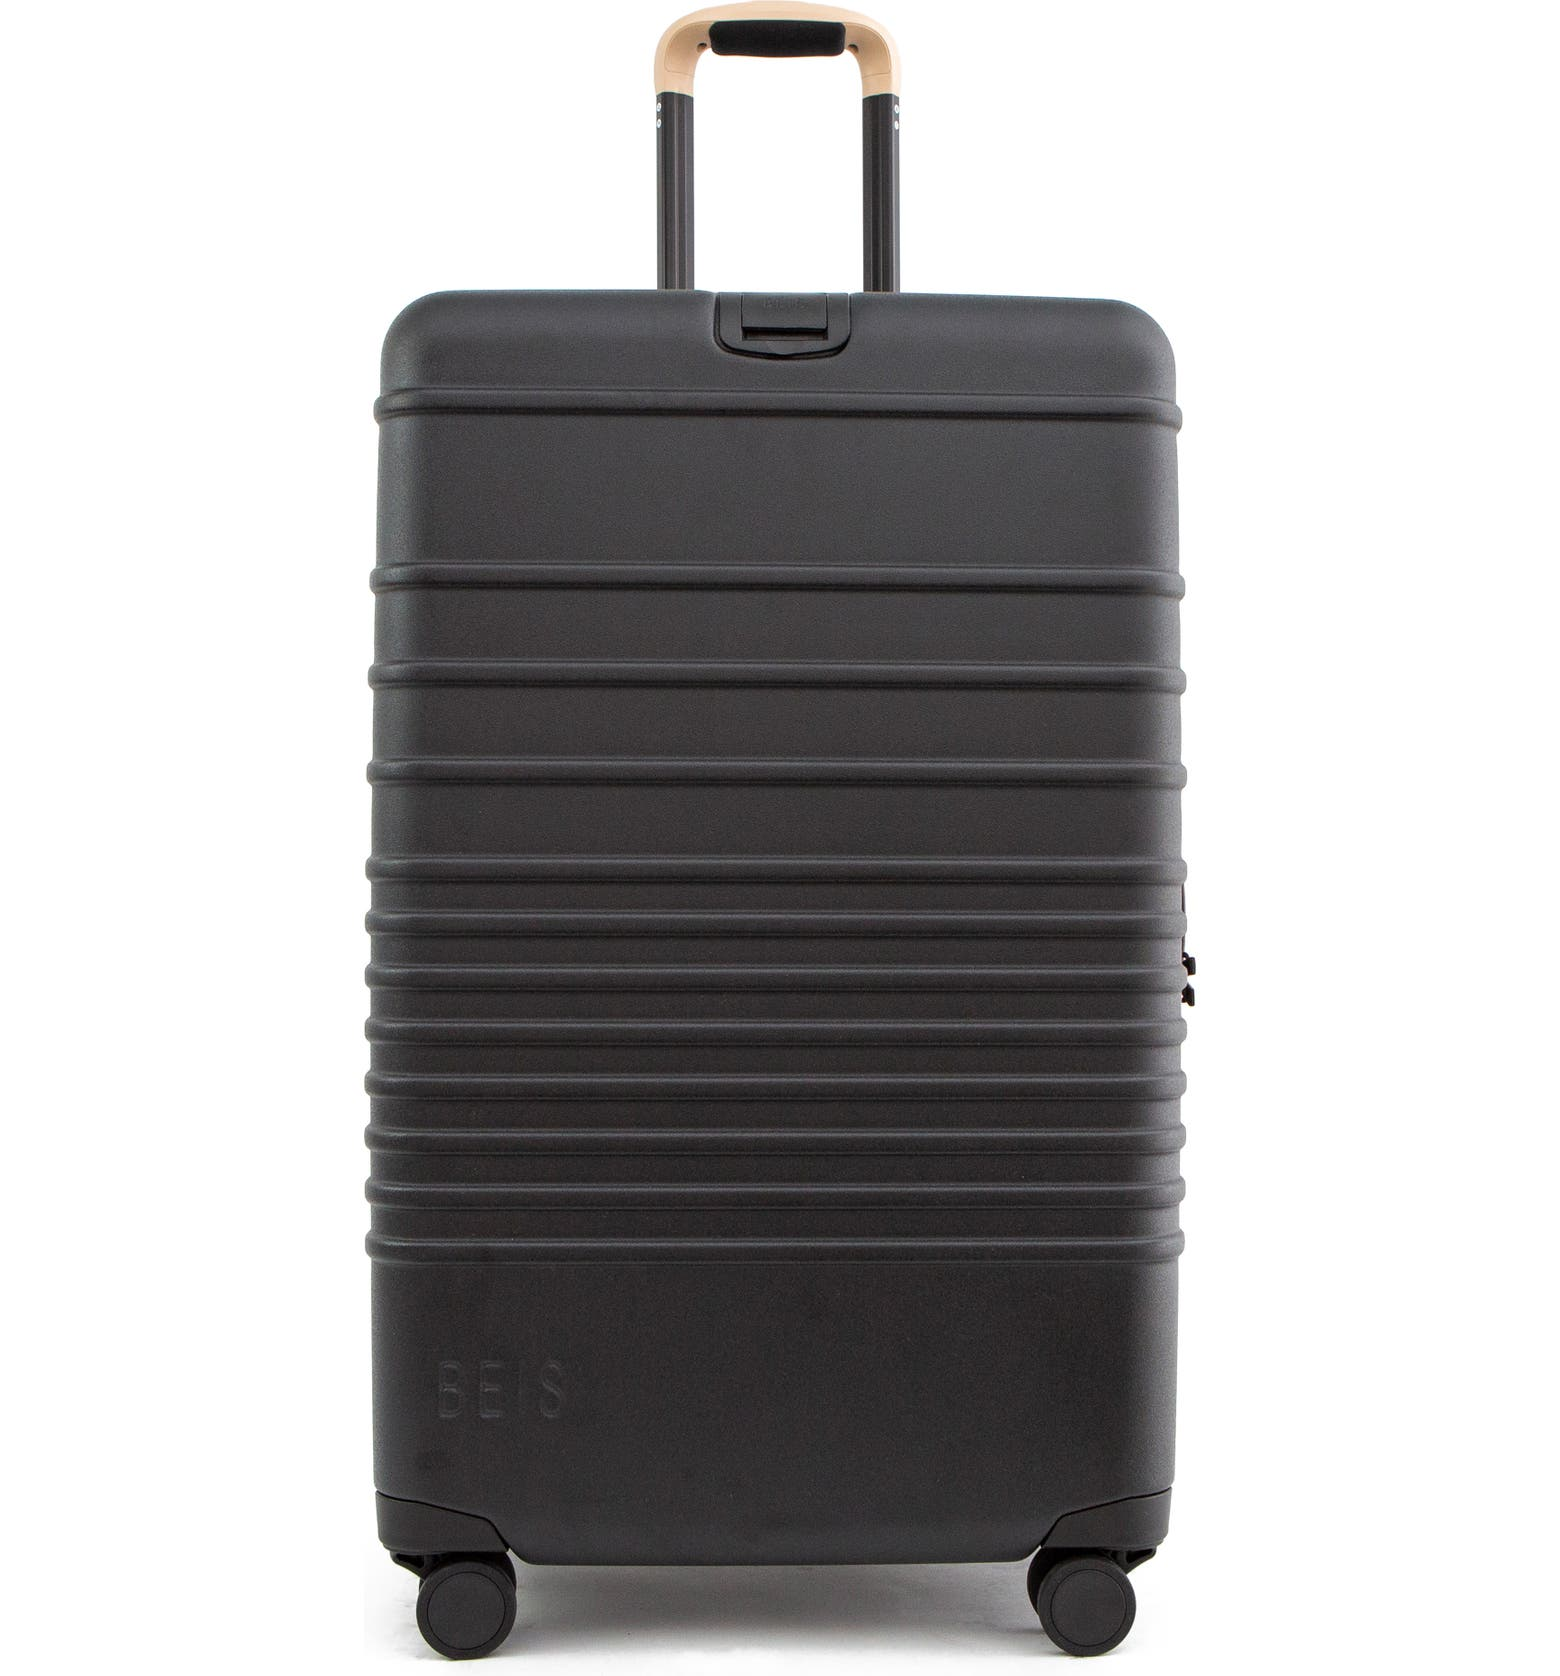 Black Beis 21-Inch Spinner Rolling Suitcase